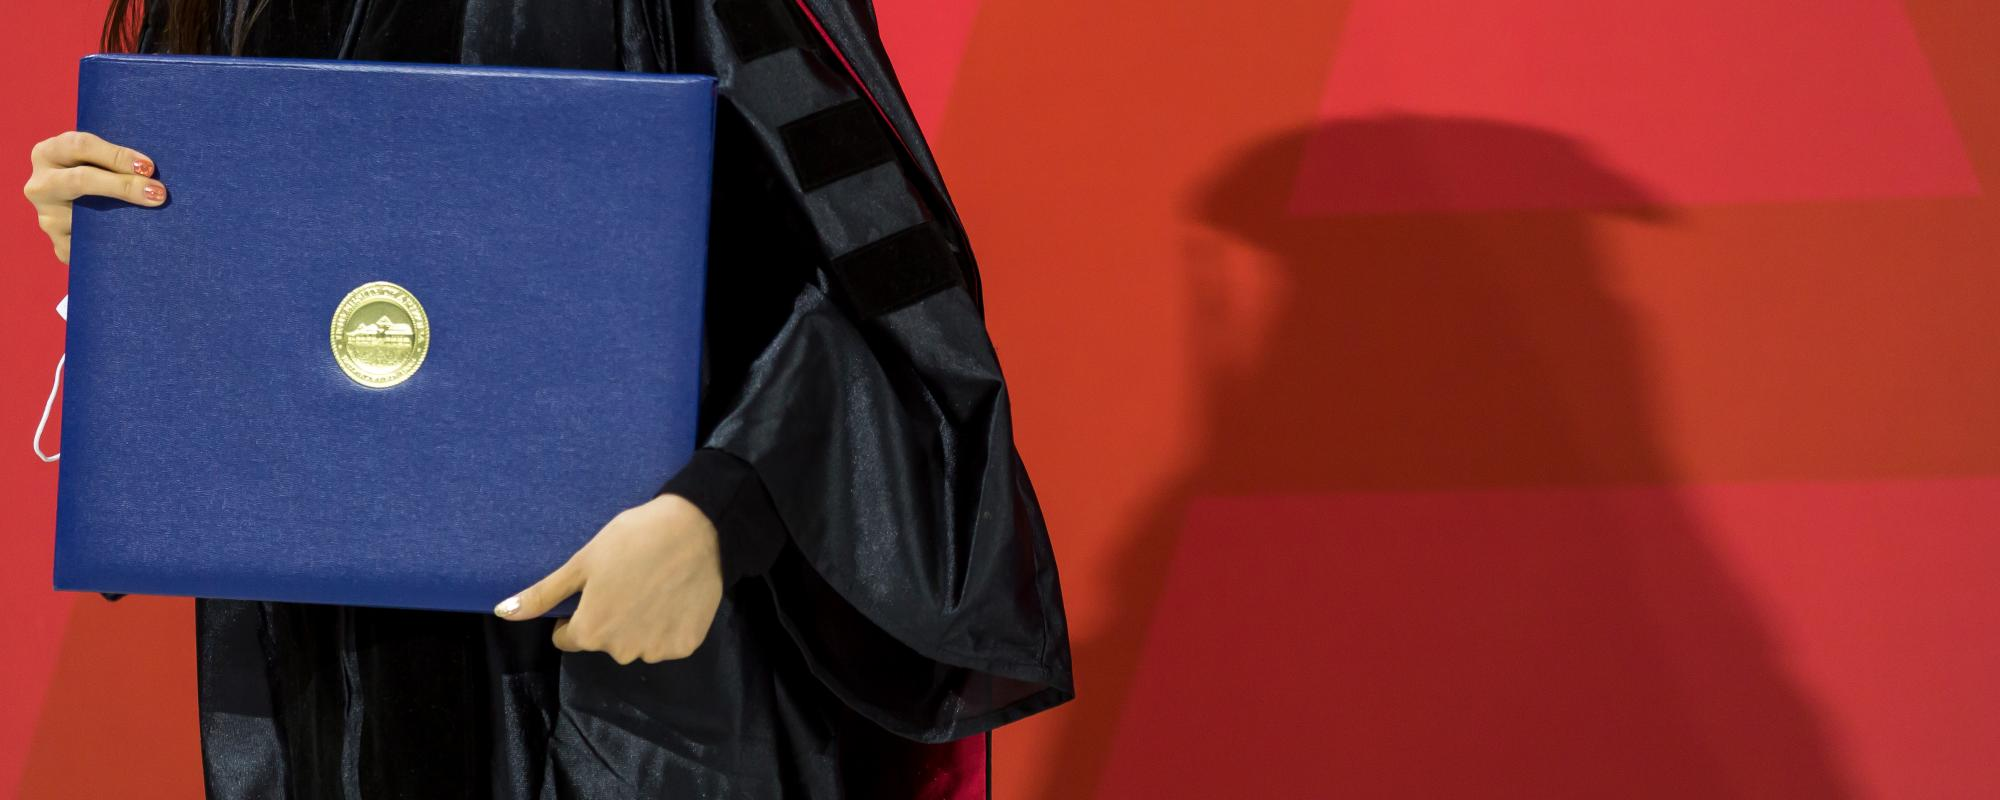 close up of person holding a diploma